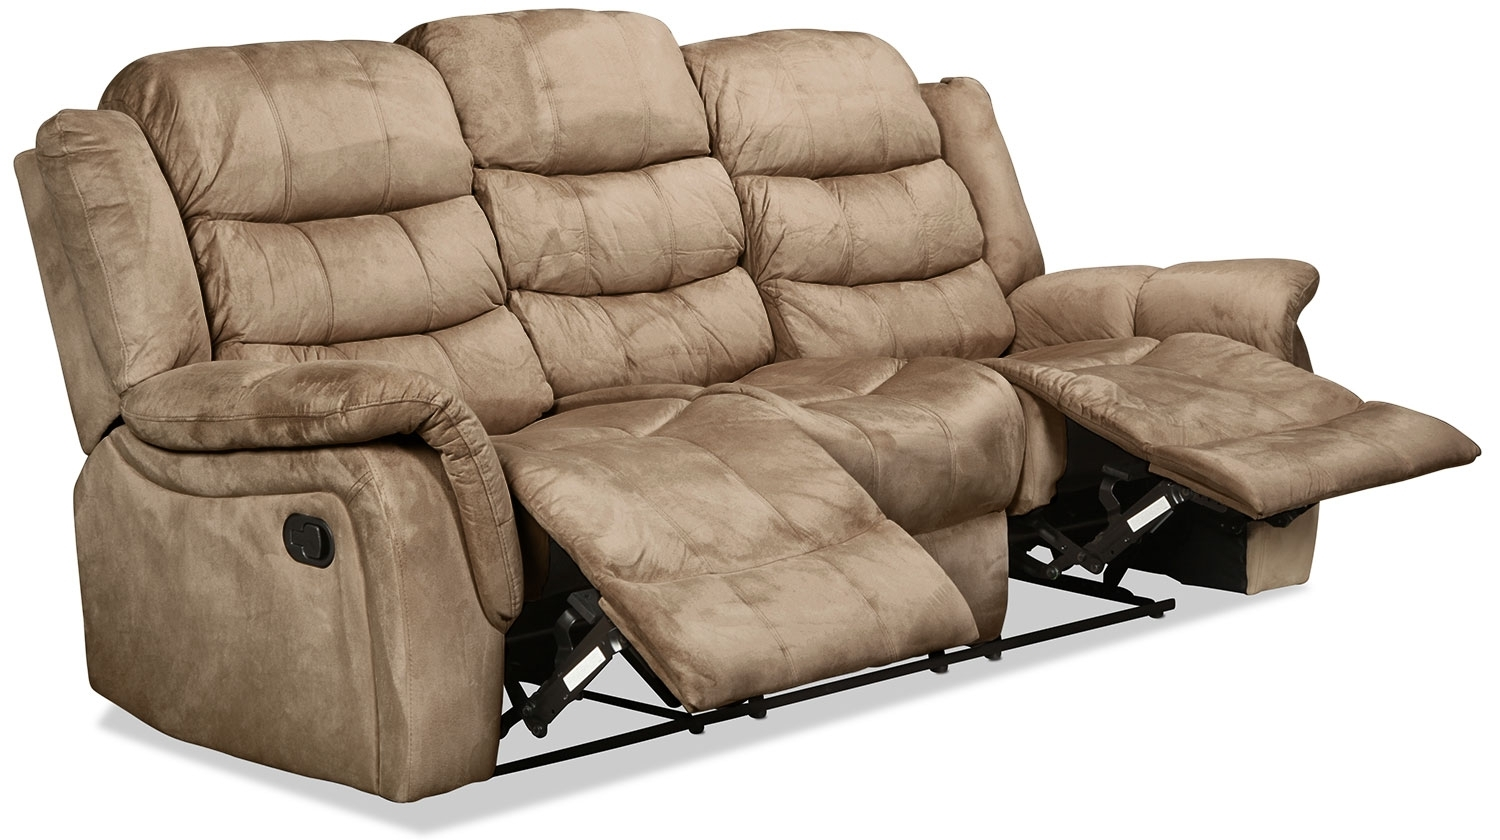 Benton Reclining Sofa – Cobblestone | Intended For Benton 4 Piece Sectionals (Image 7 of 25)